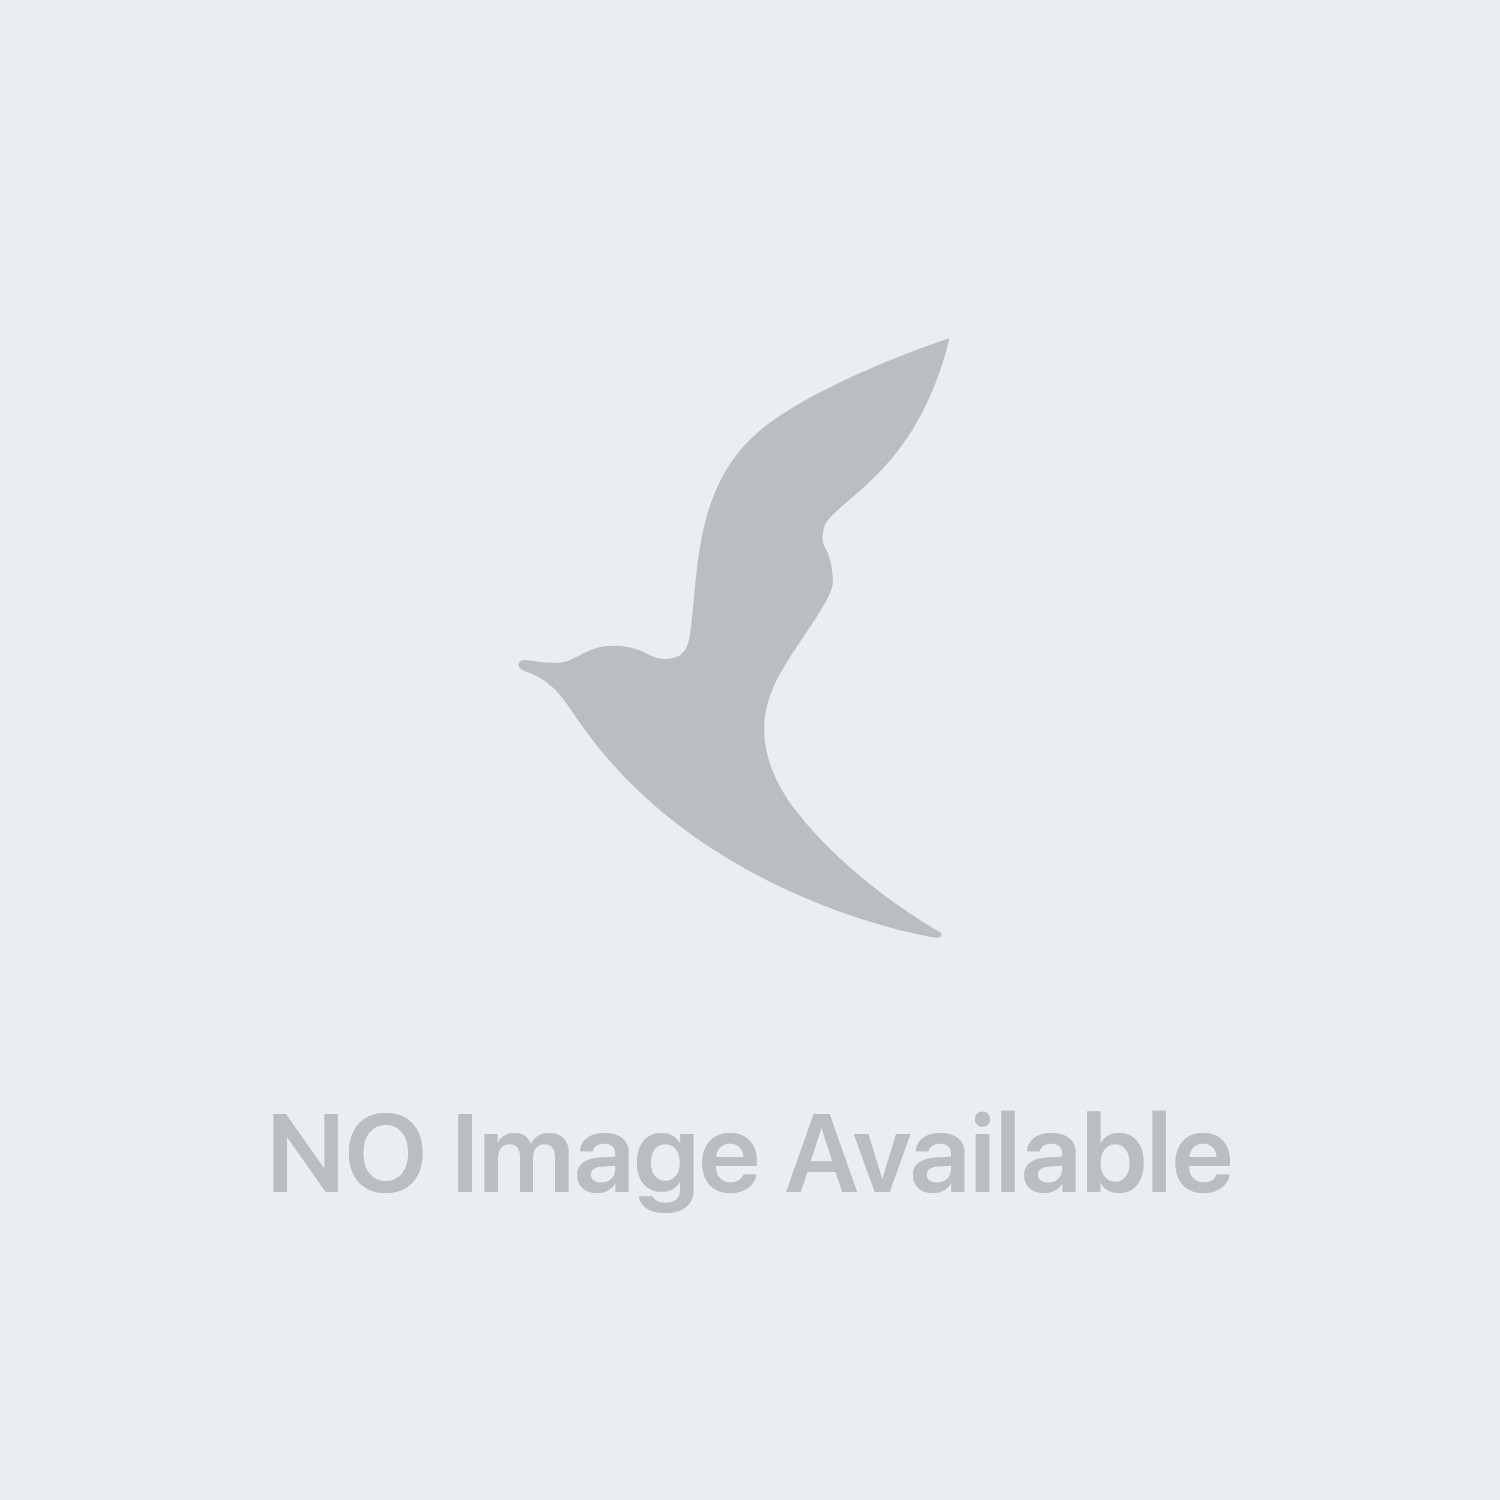 Tantum Verde Natura Gola Spray Integratore 15 ml